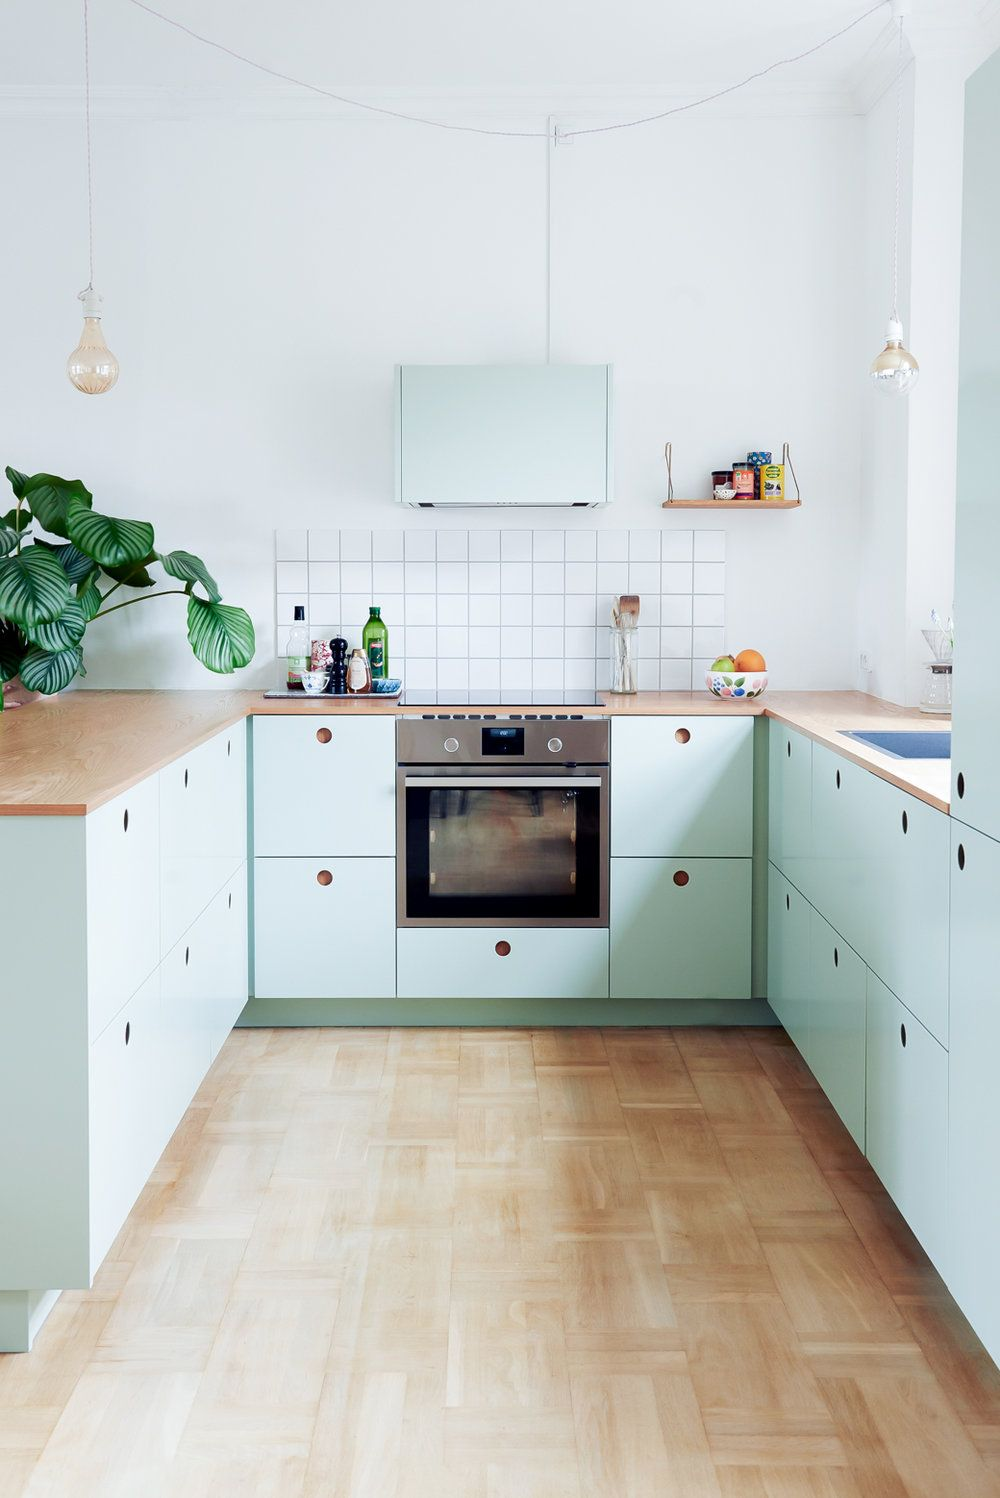 Ikea Kitchen Hack In Mint Green Kitchens Without Upper Cabinets Kitchen Color Trends Modern Kitchen Upgrades